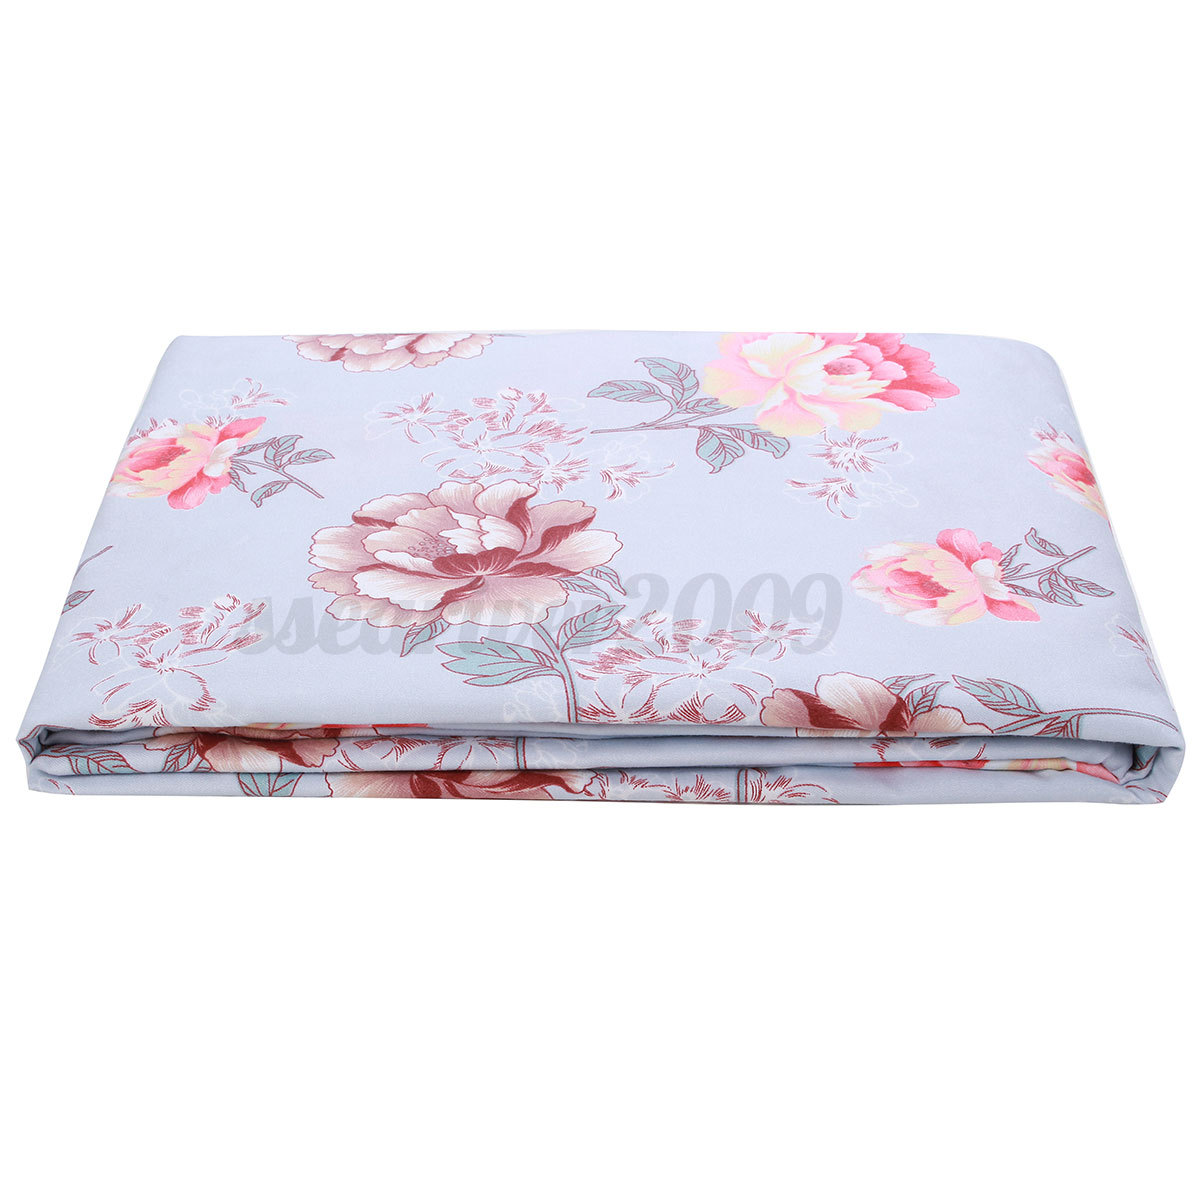 Sofa-Chaise-Cover-Housse-Etui-Couverture-elasticite-Protecteur-Deco-Salon-Maison